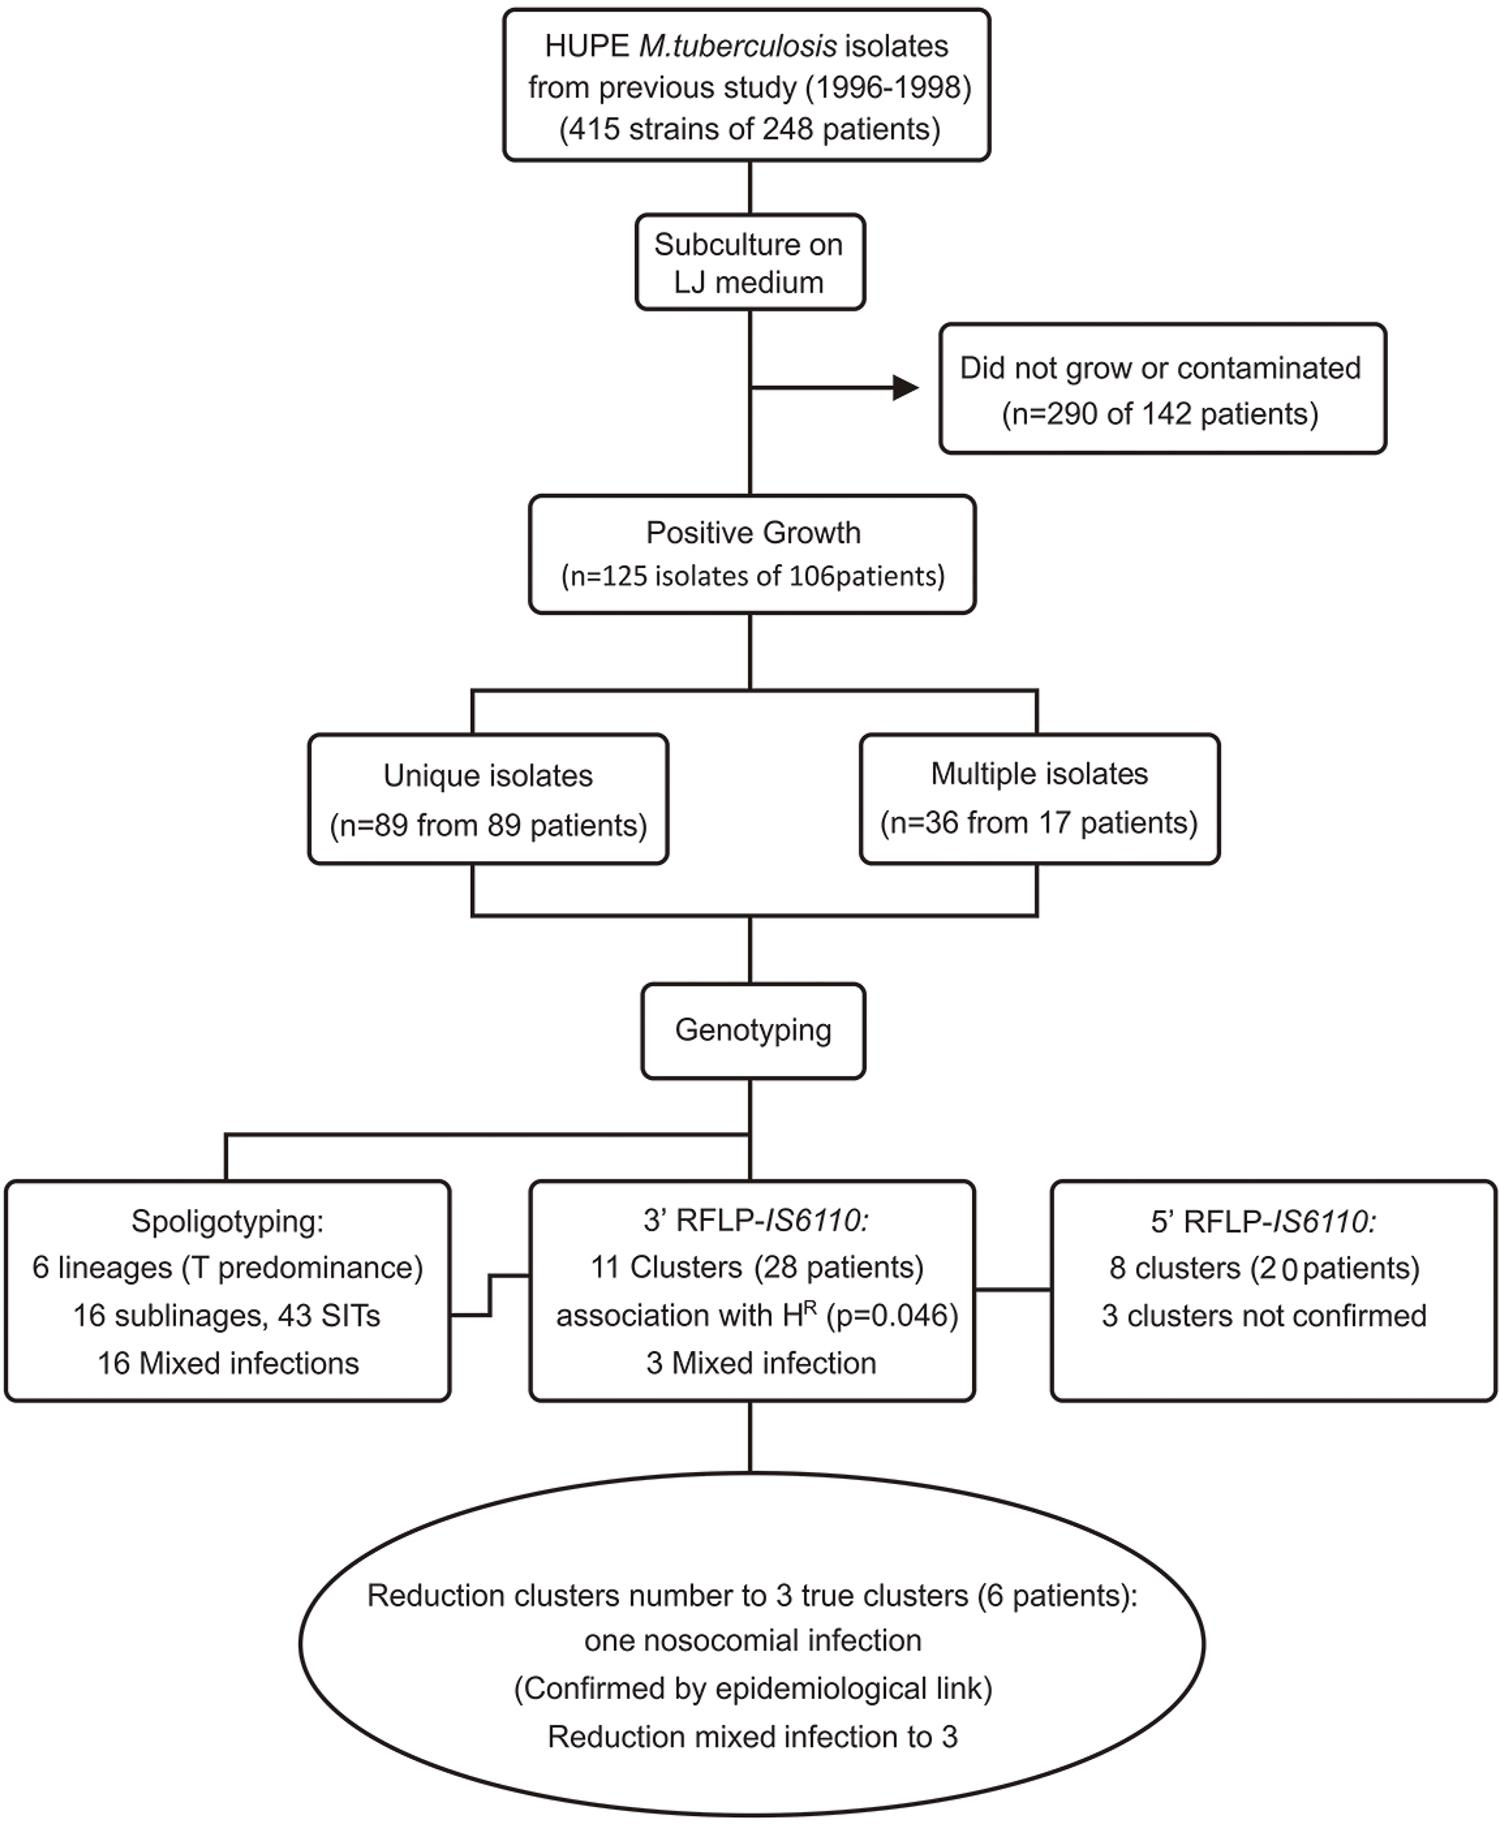 Flowchart on the recovery of M. tuberculosis isolates of TB patients attended at the tertiary Pedro Ernesto University Hospital, Rio de Janeiro, Brazil, 1996-1998, and the main genotyping results.